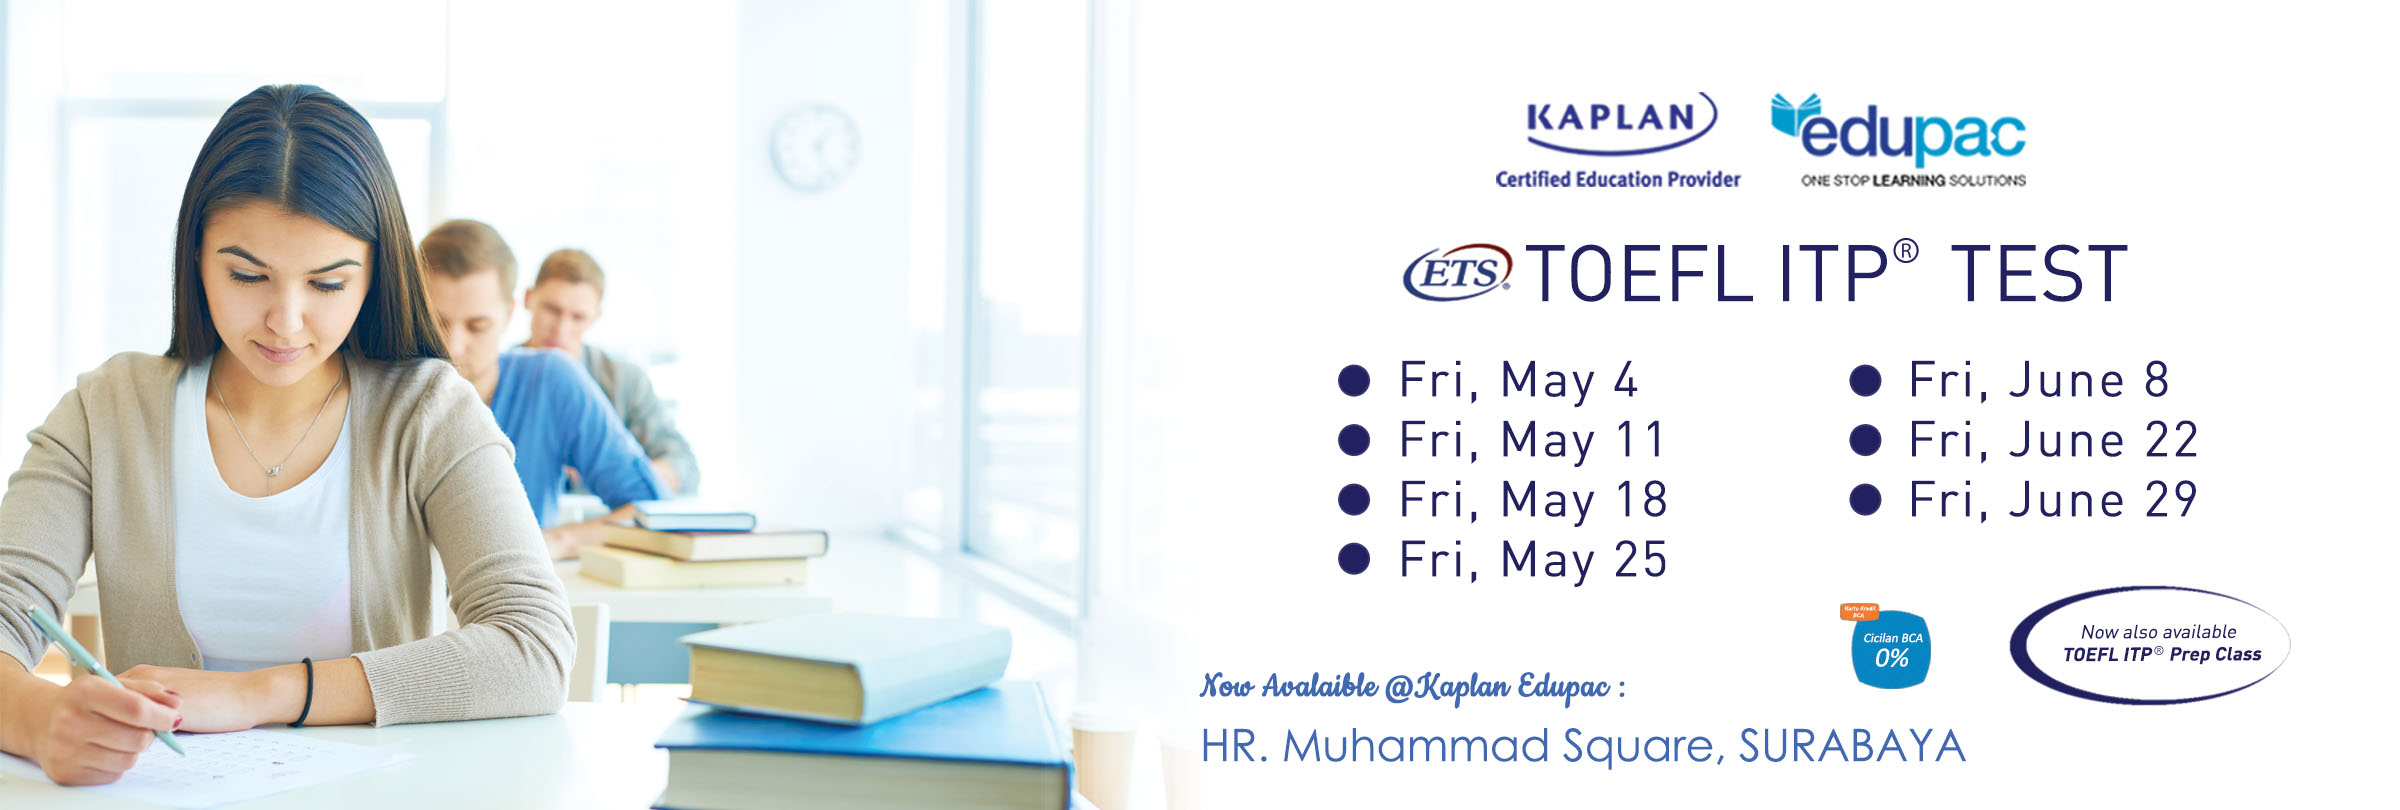 Surabaya TOEFL ITP Test Schedule for May-June 2018